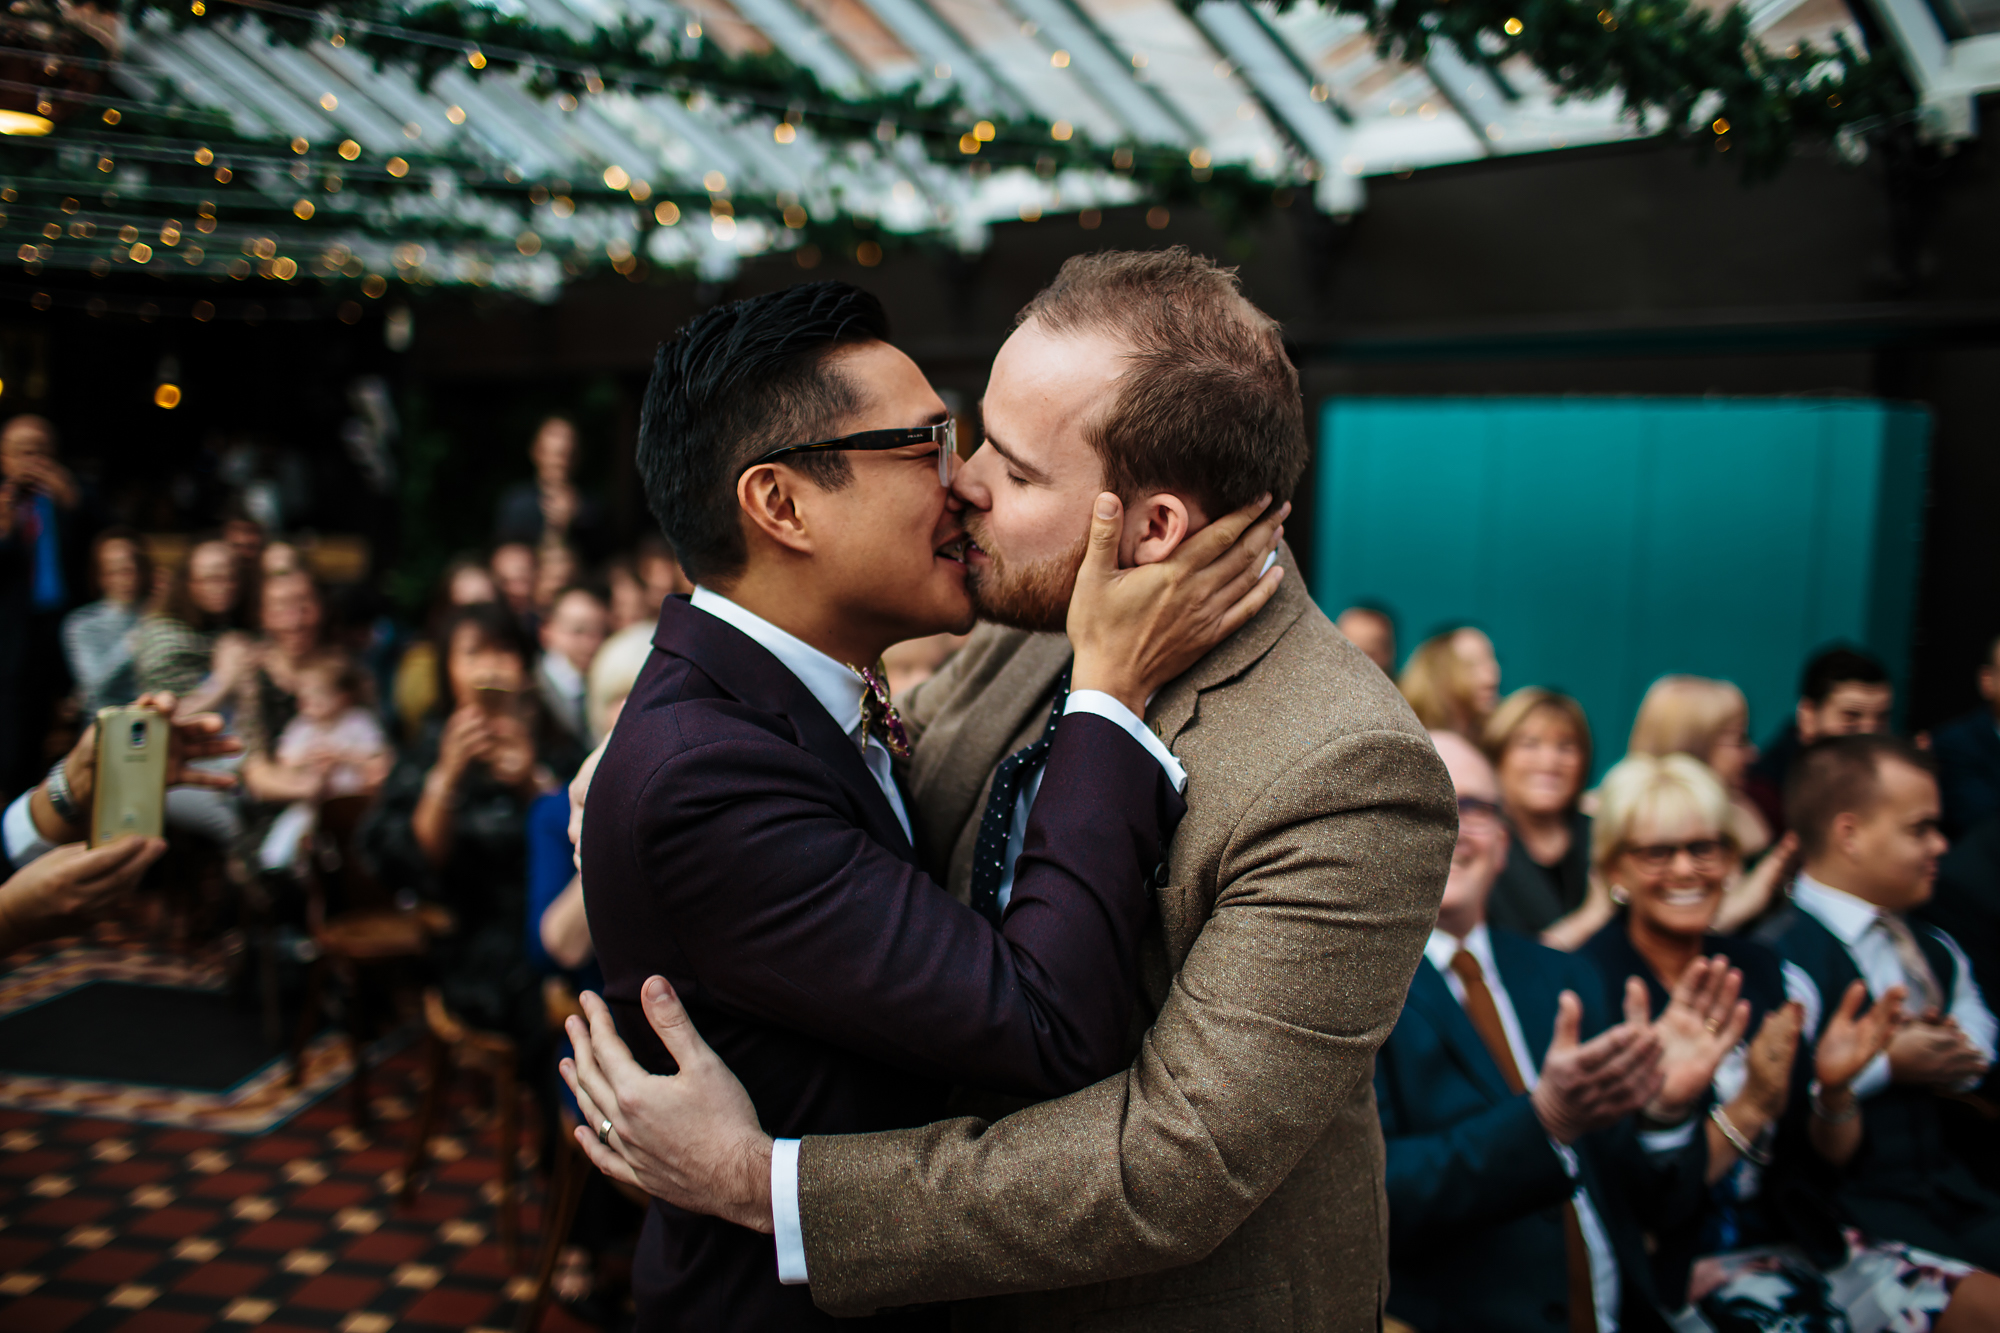 Grooms kissing at a gay wedding in Yorkshire